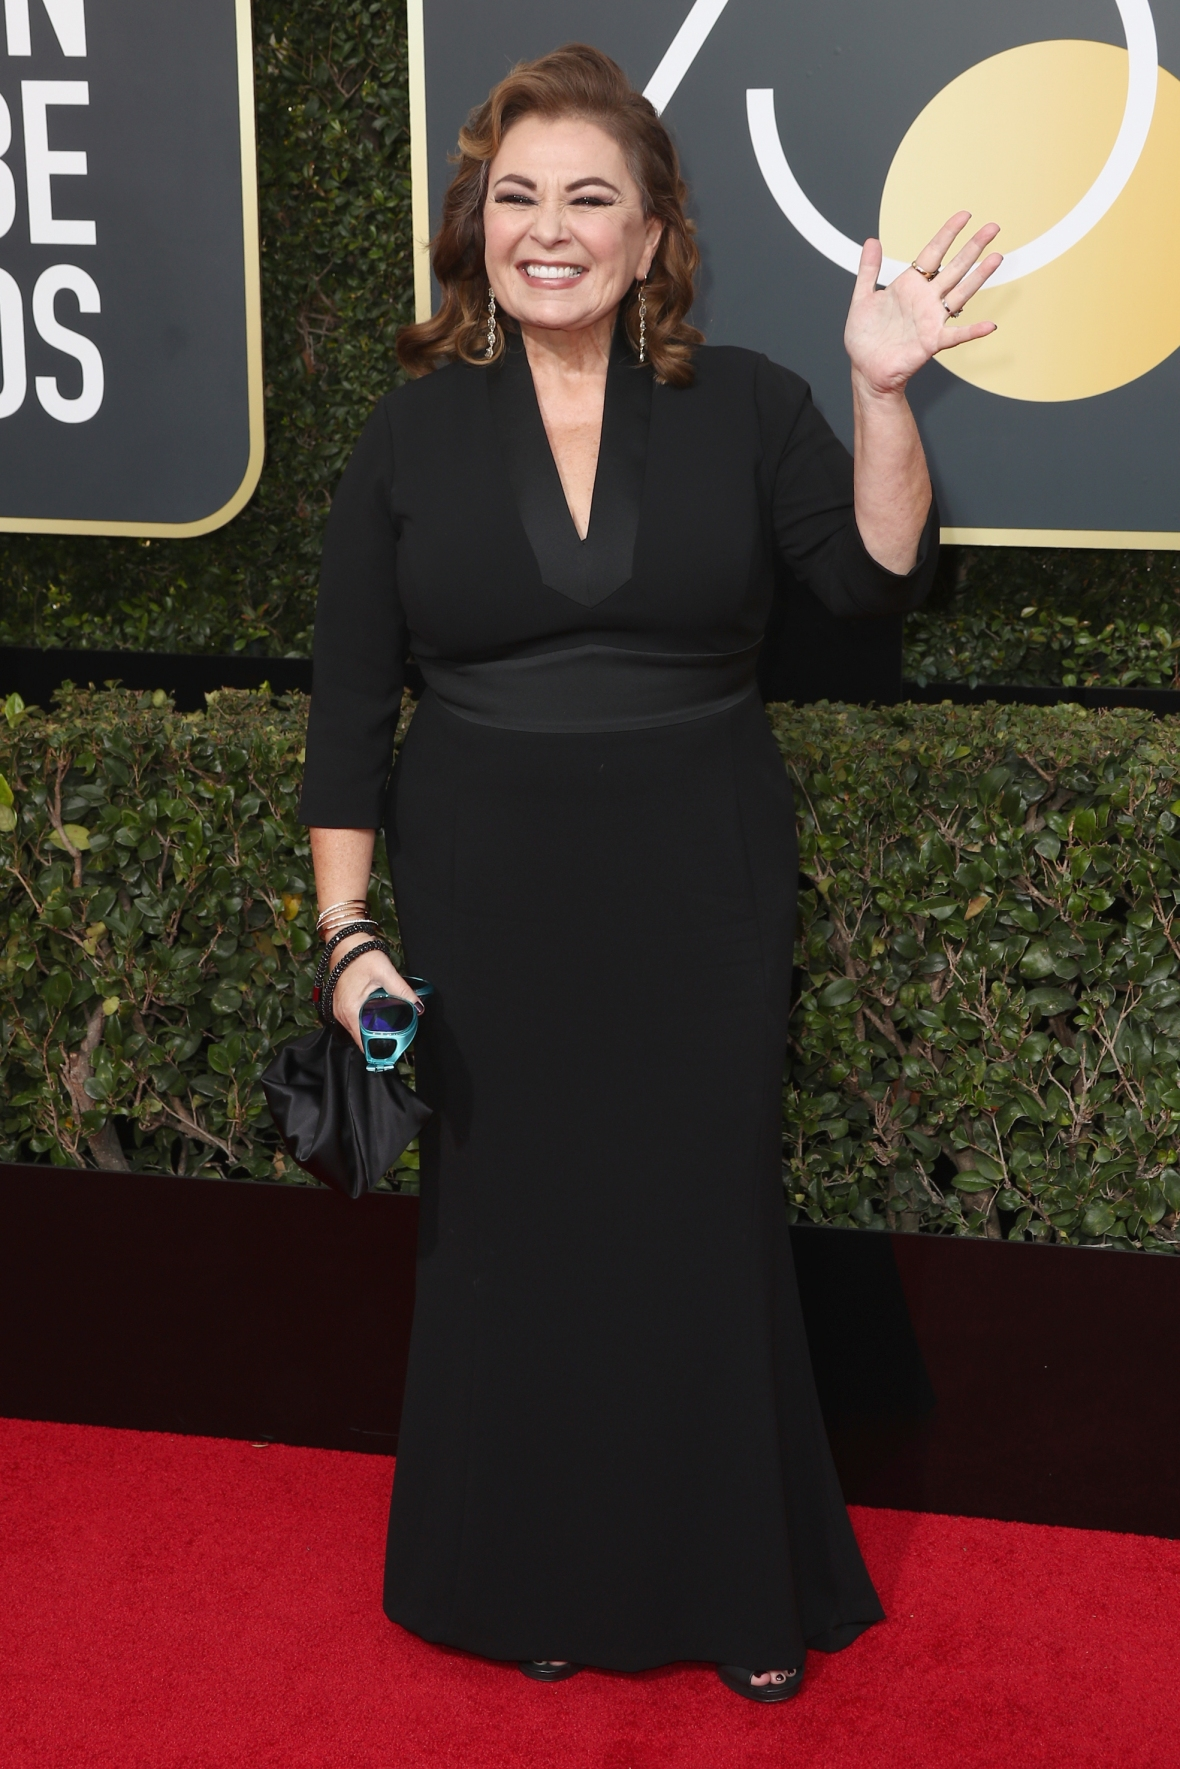 roseanne, getty